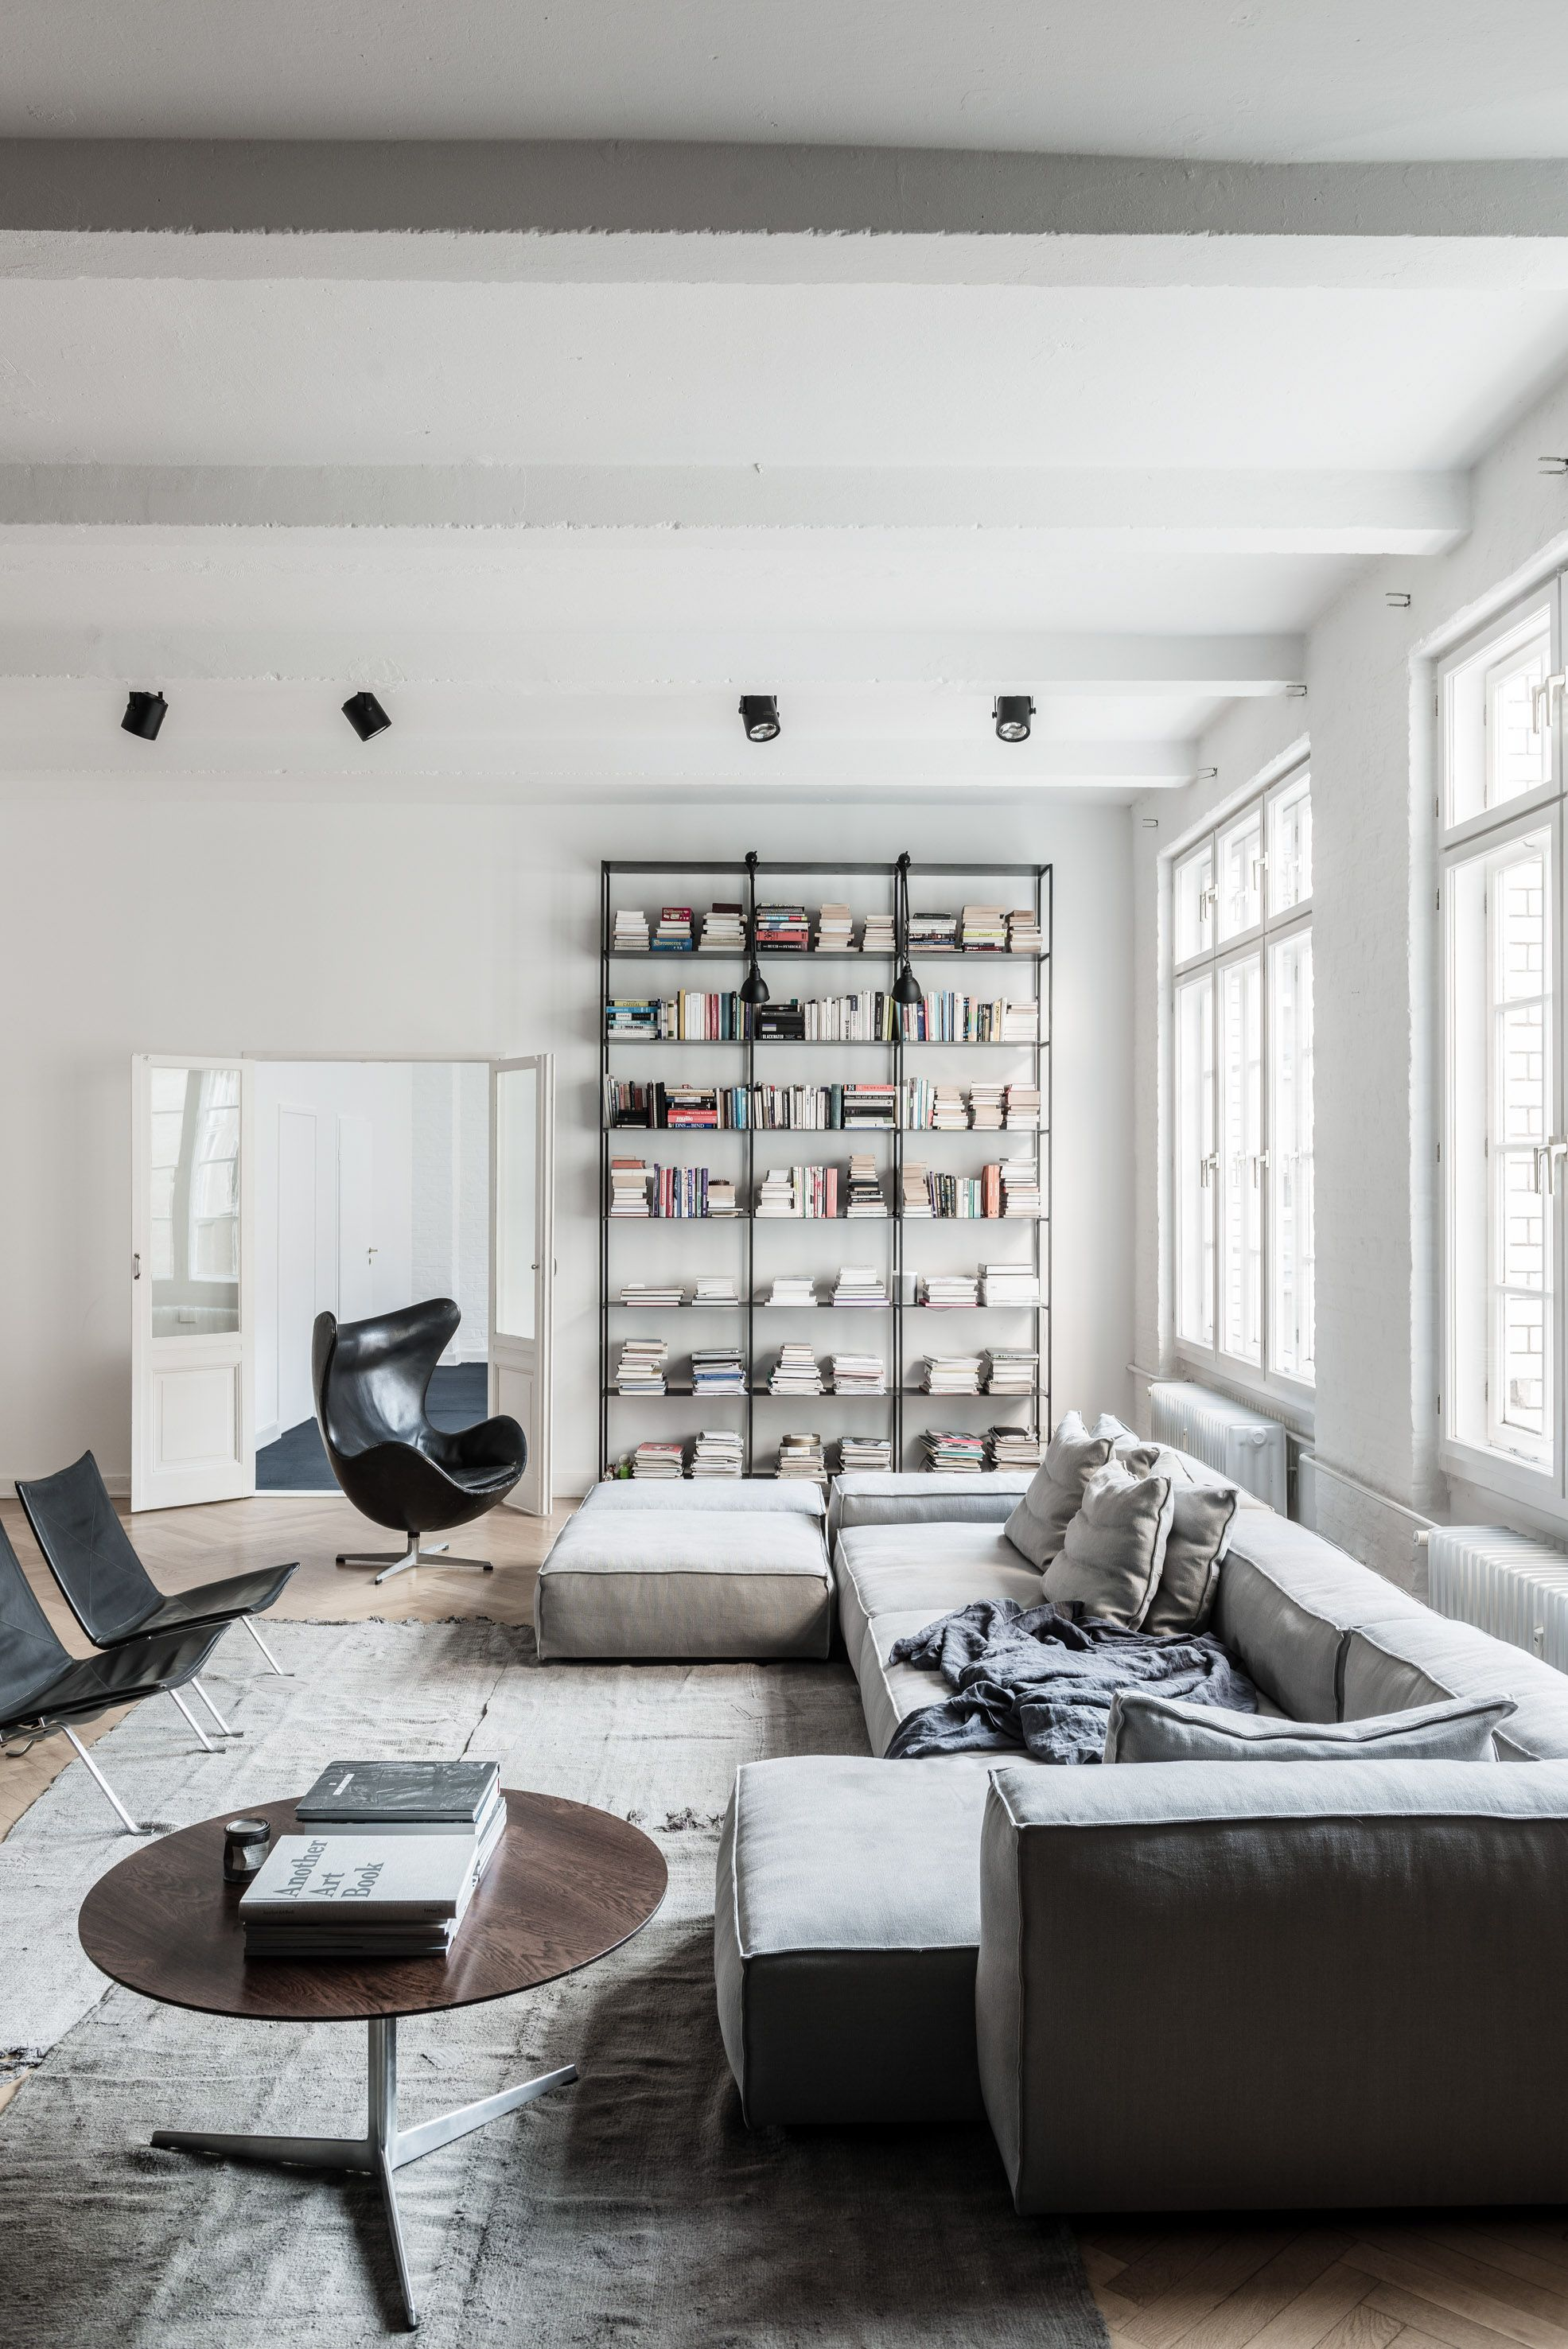 Interior Design & Styling by Annabell Kutucu Photography by Claus ...